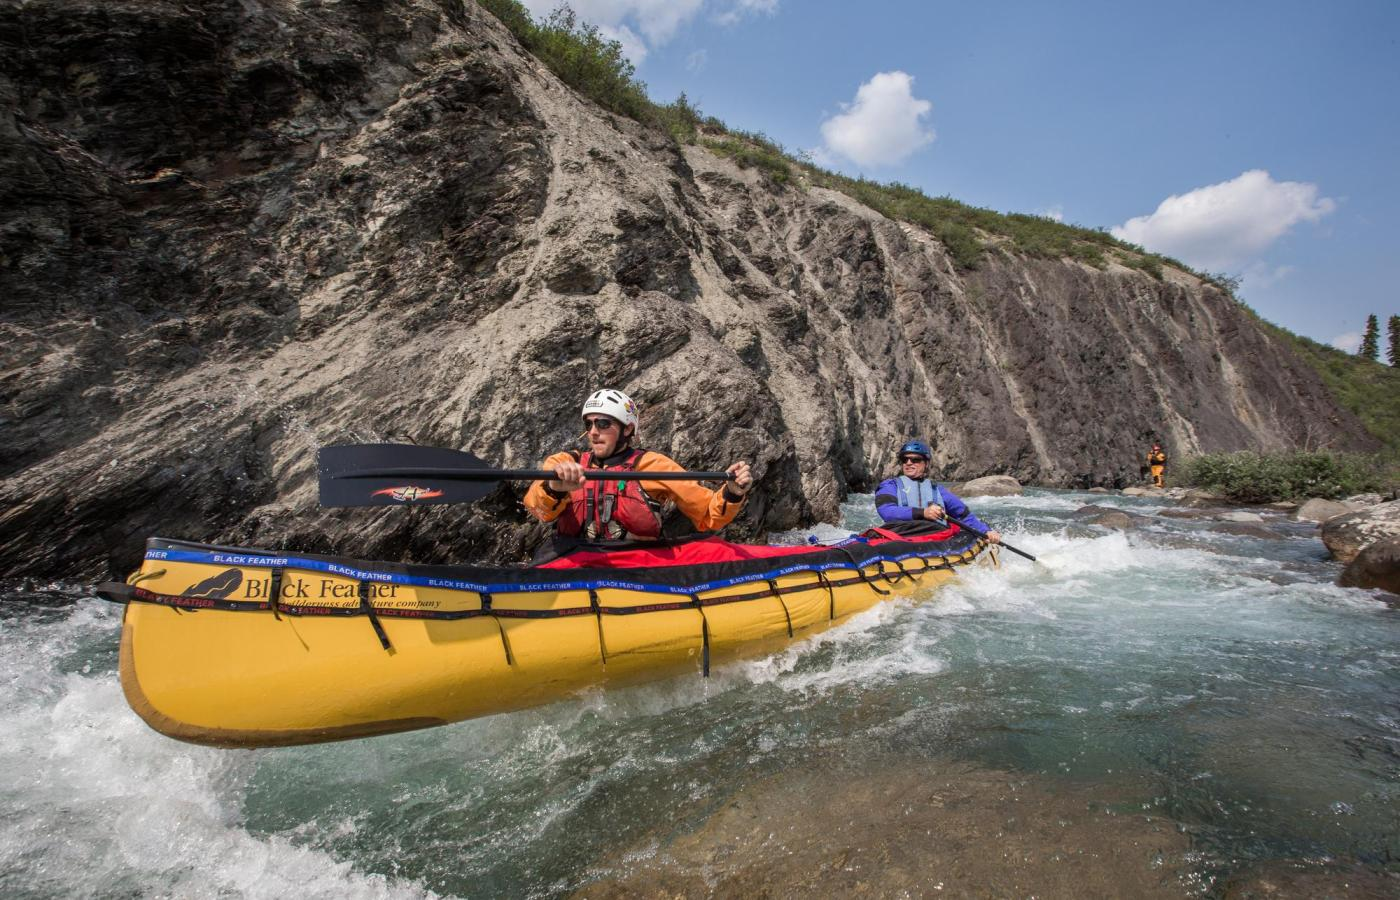 A couple takes on the white water of the nahanni river